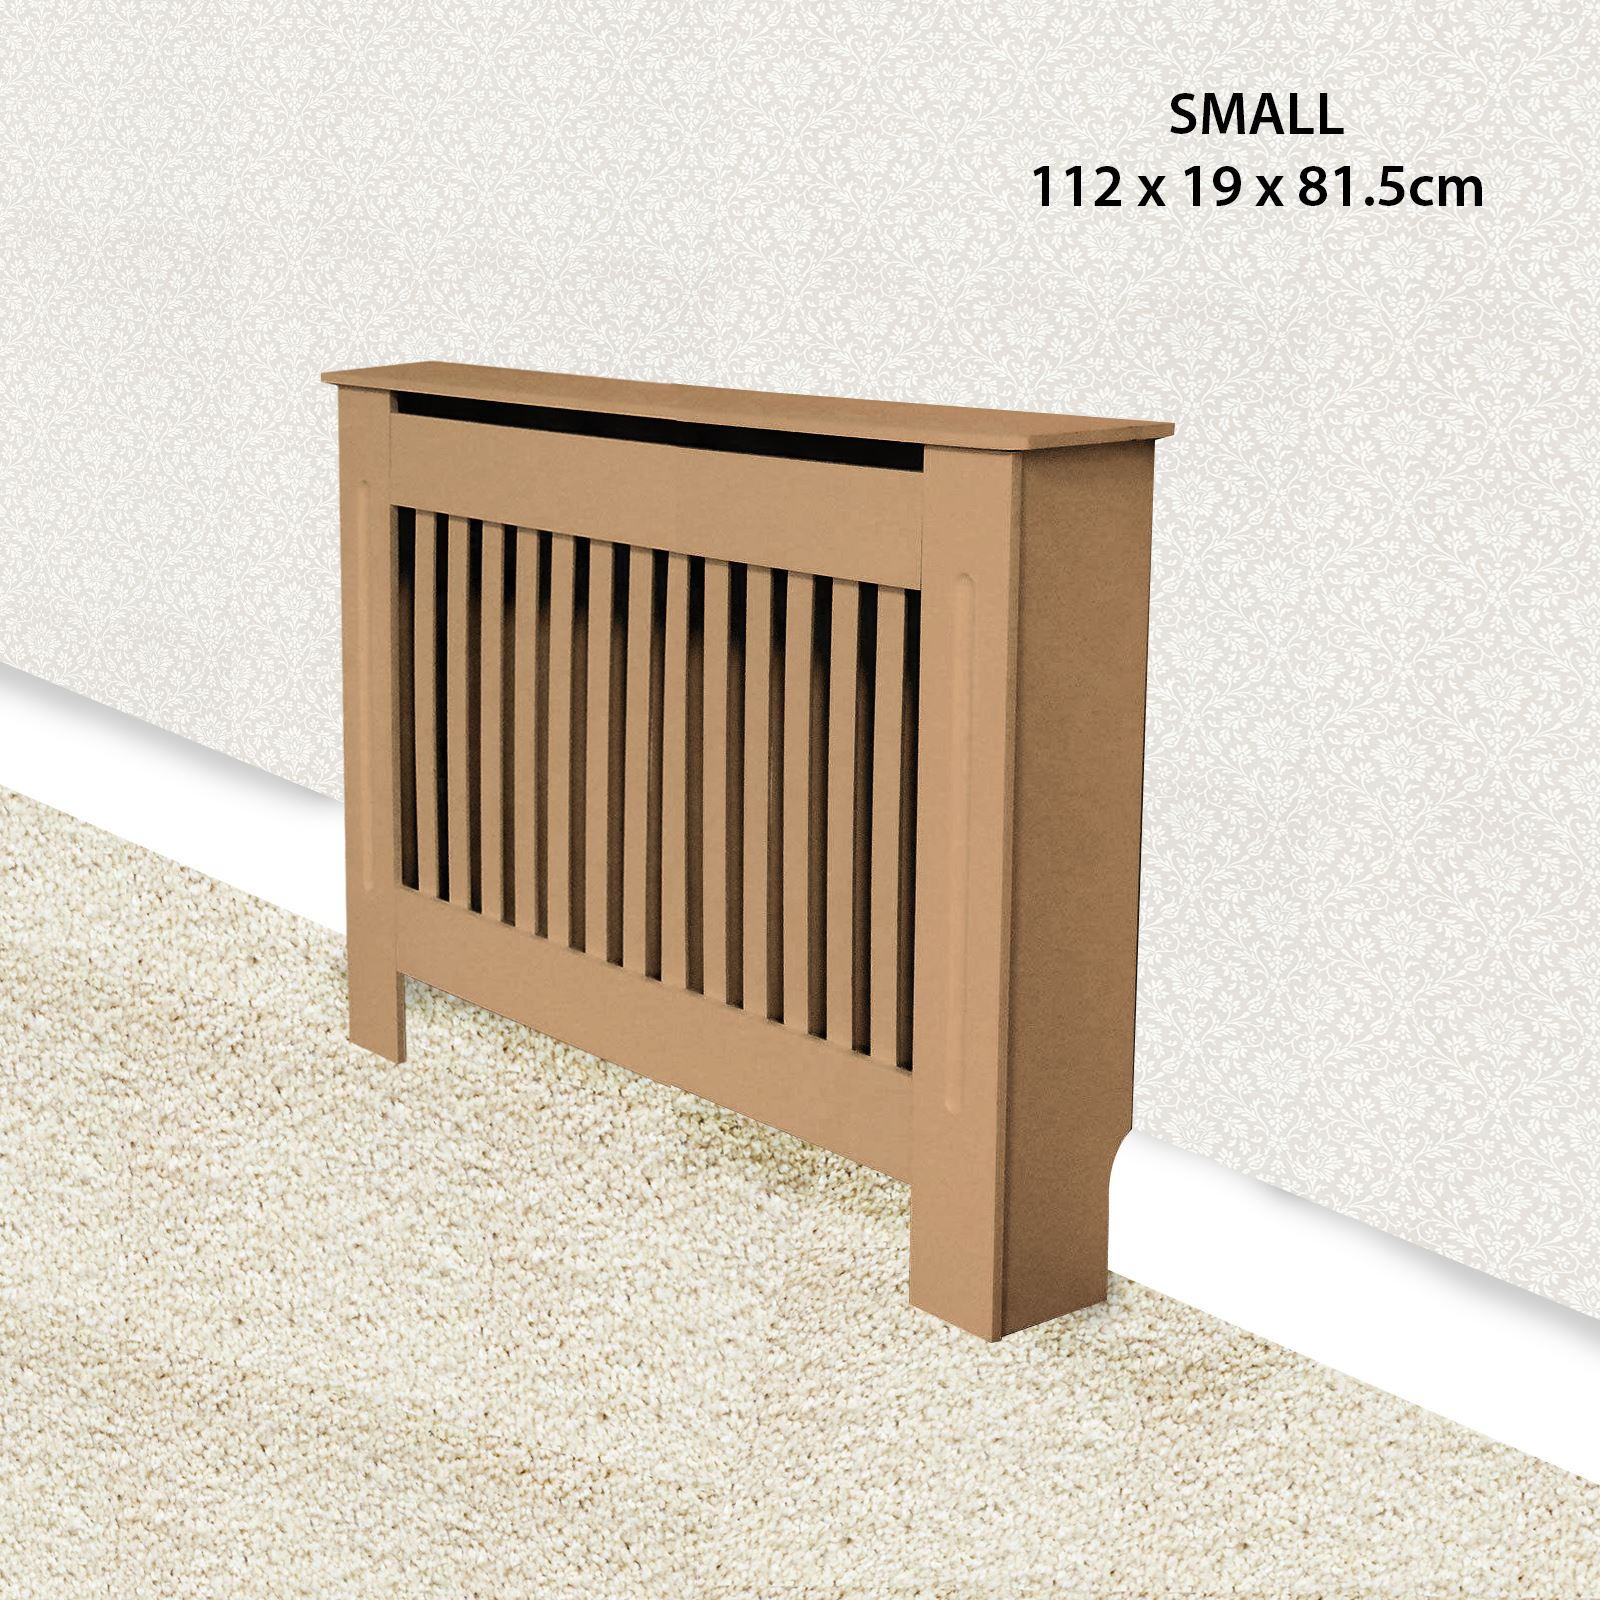 Traditional-Radiator-Cover-Cabinet-Vertical-Slatted-MDF-Wood-Small-Large-Unit thumbnail 15